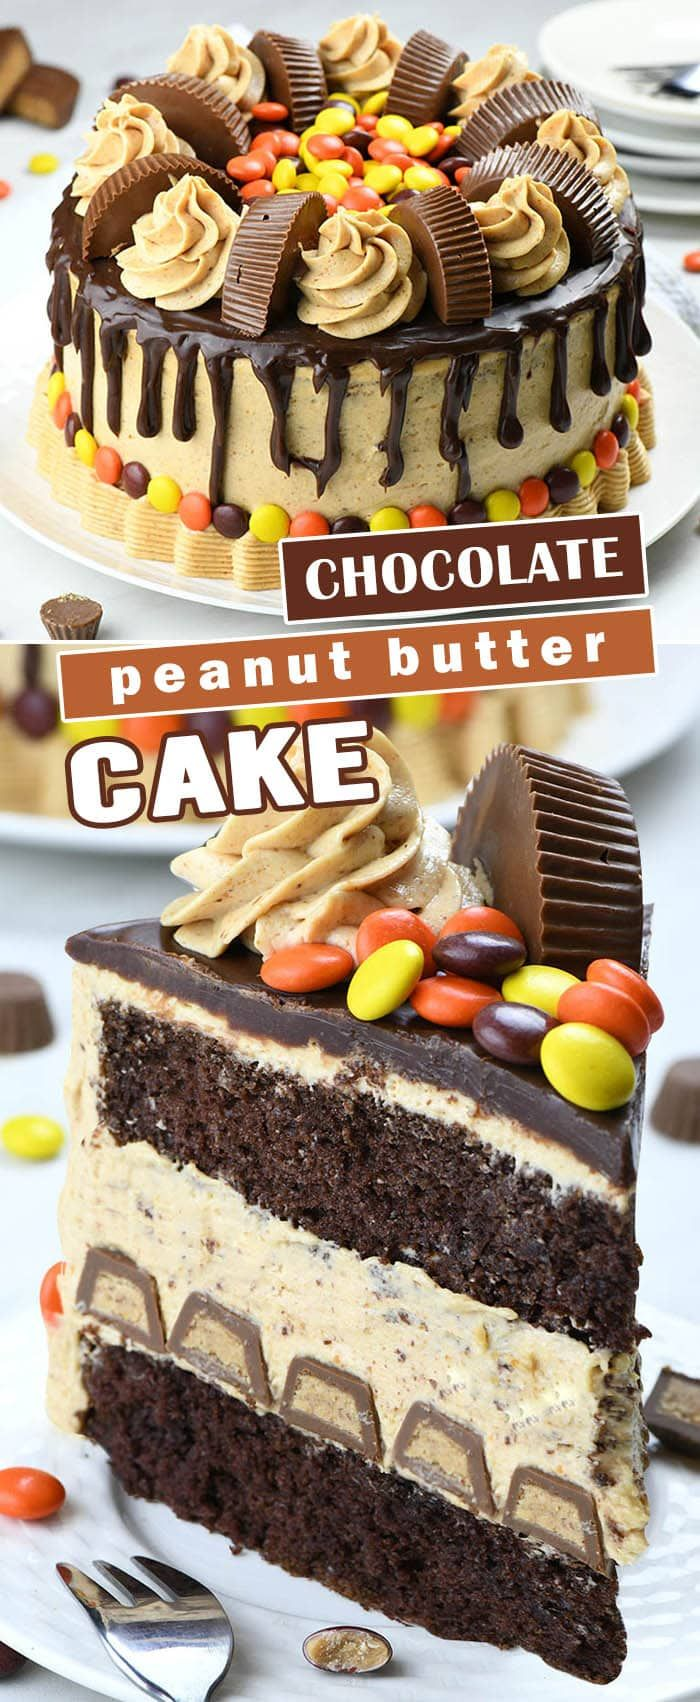 Peanut Butter Chocolate Cake is perfect dessert, anytime!